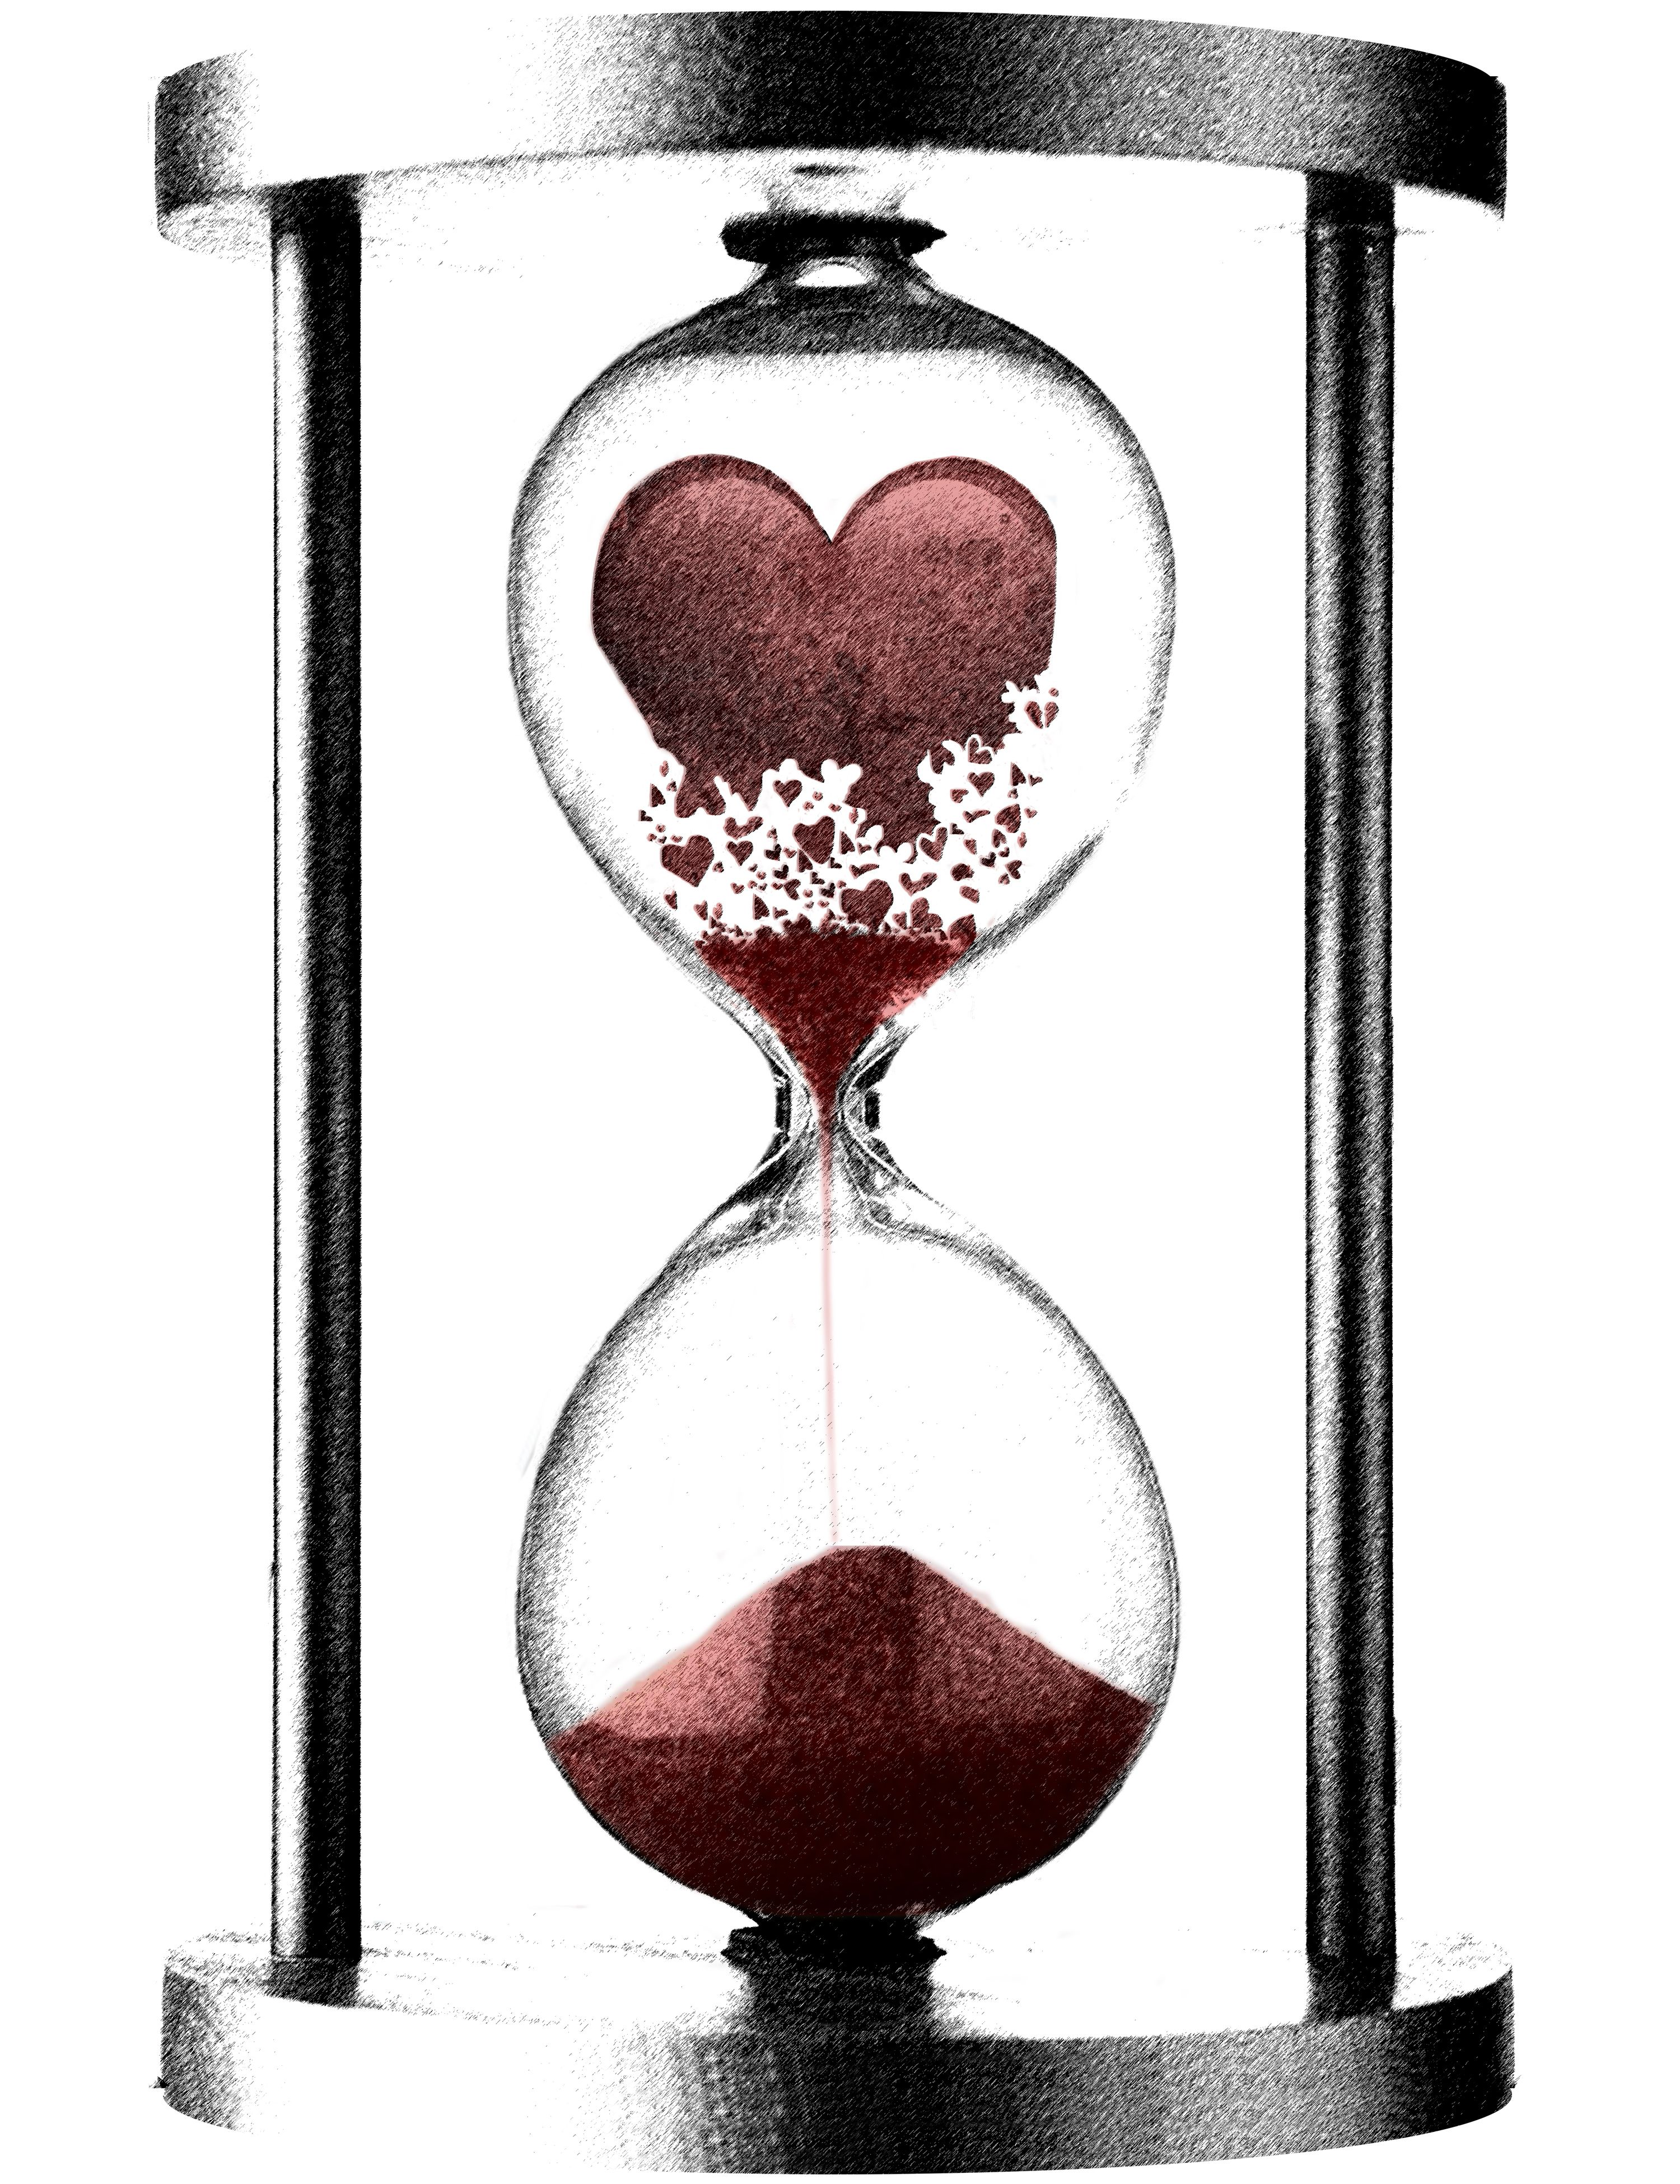 Hour glass crumblinghearthourglassbyscribble14 embrace image detail for crumbling heart hourglass i like this for a tat biocorpaavc Images